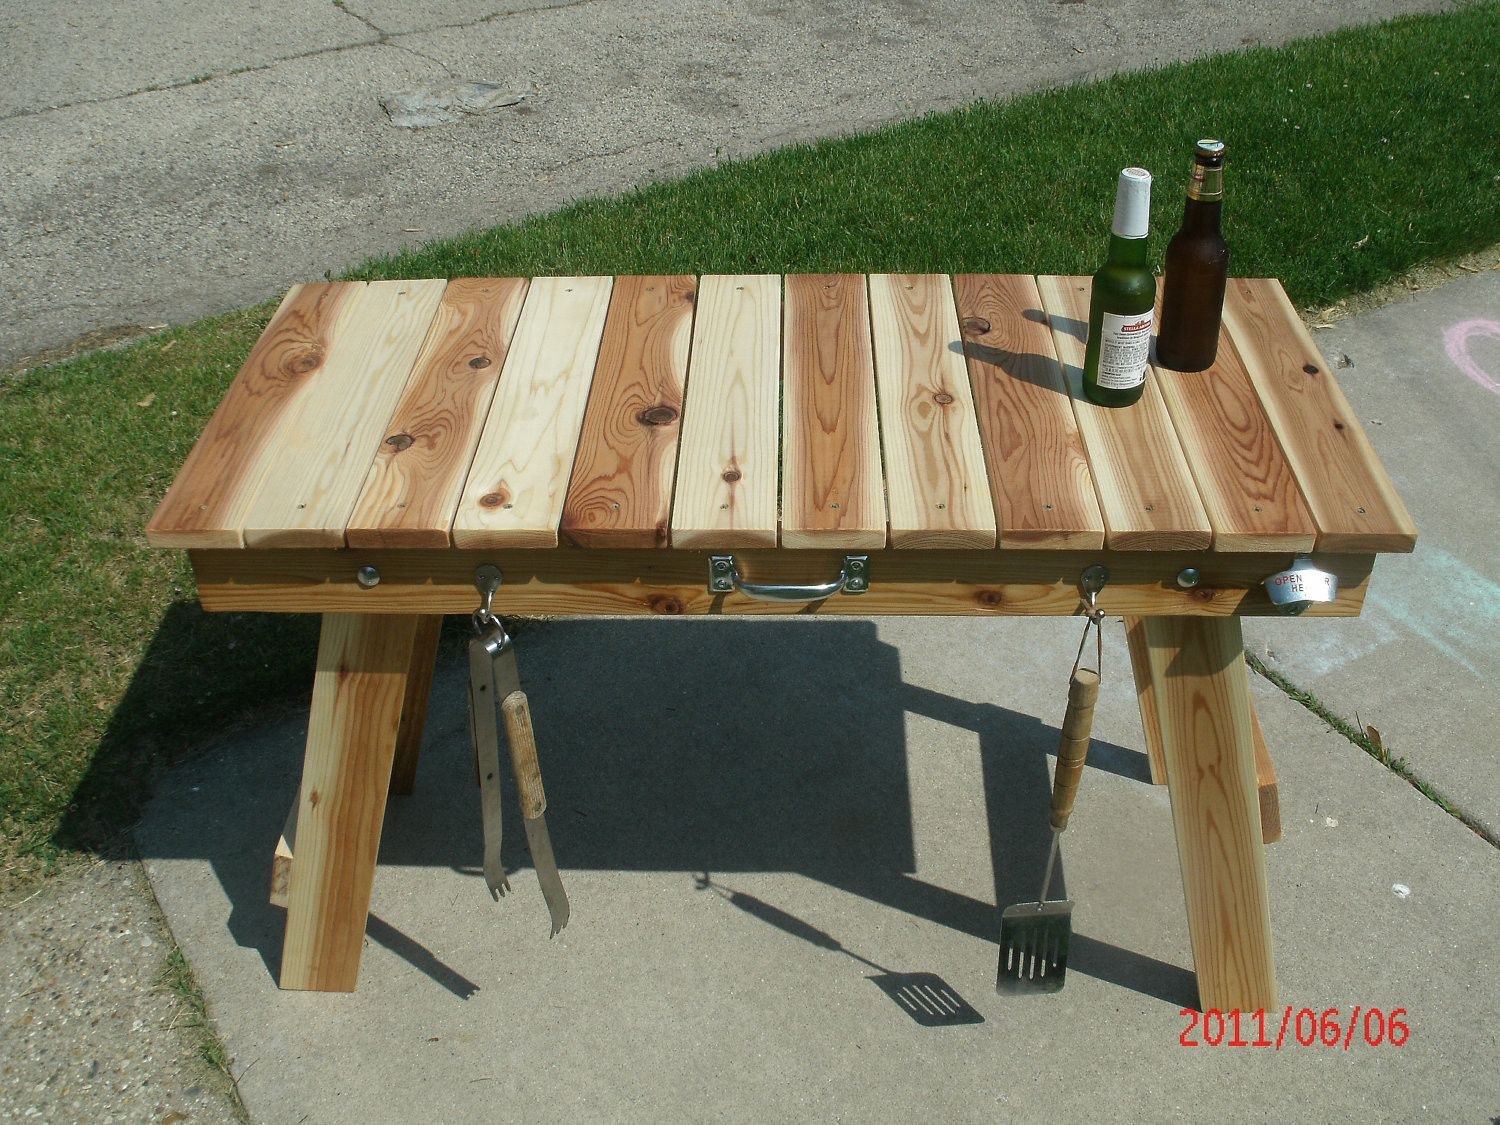 Folding Grill Table | Grill table, Camping table, Wood grill